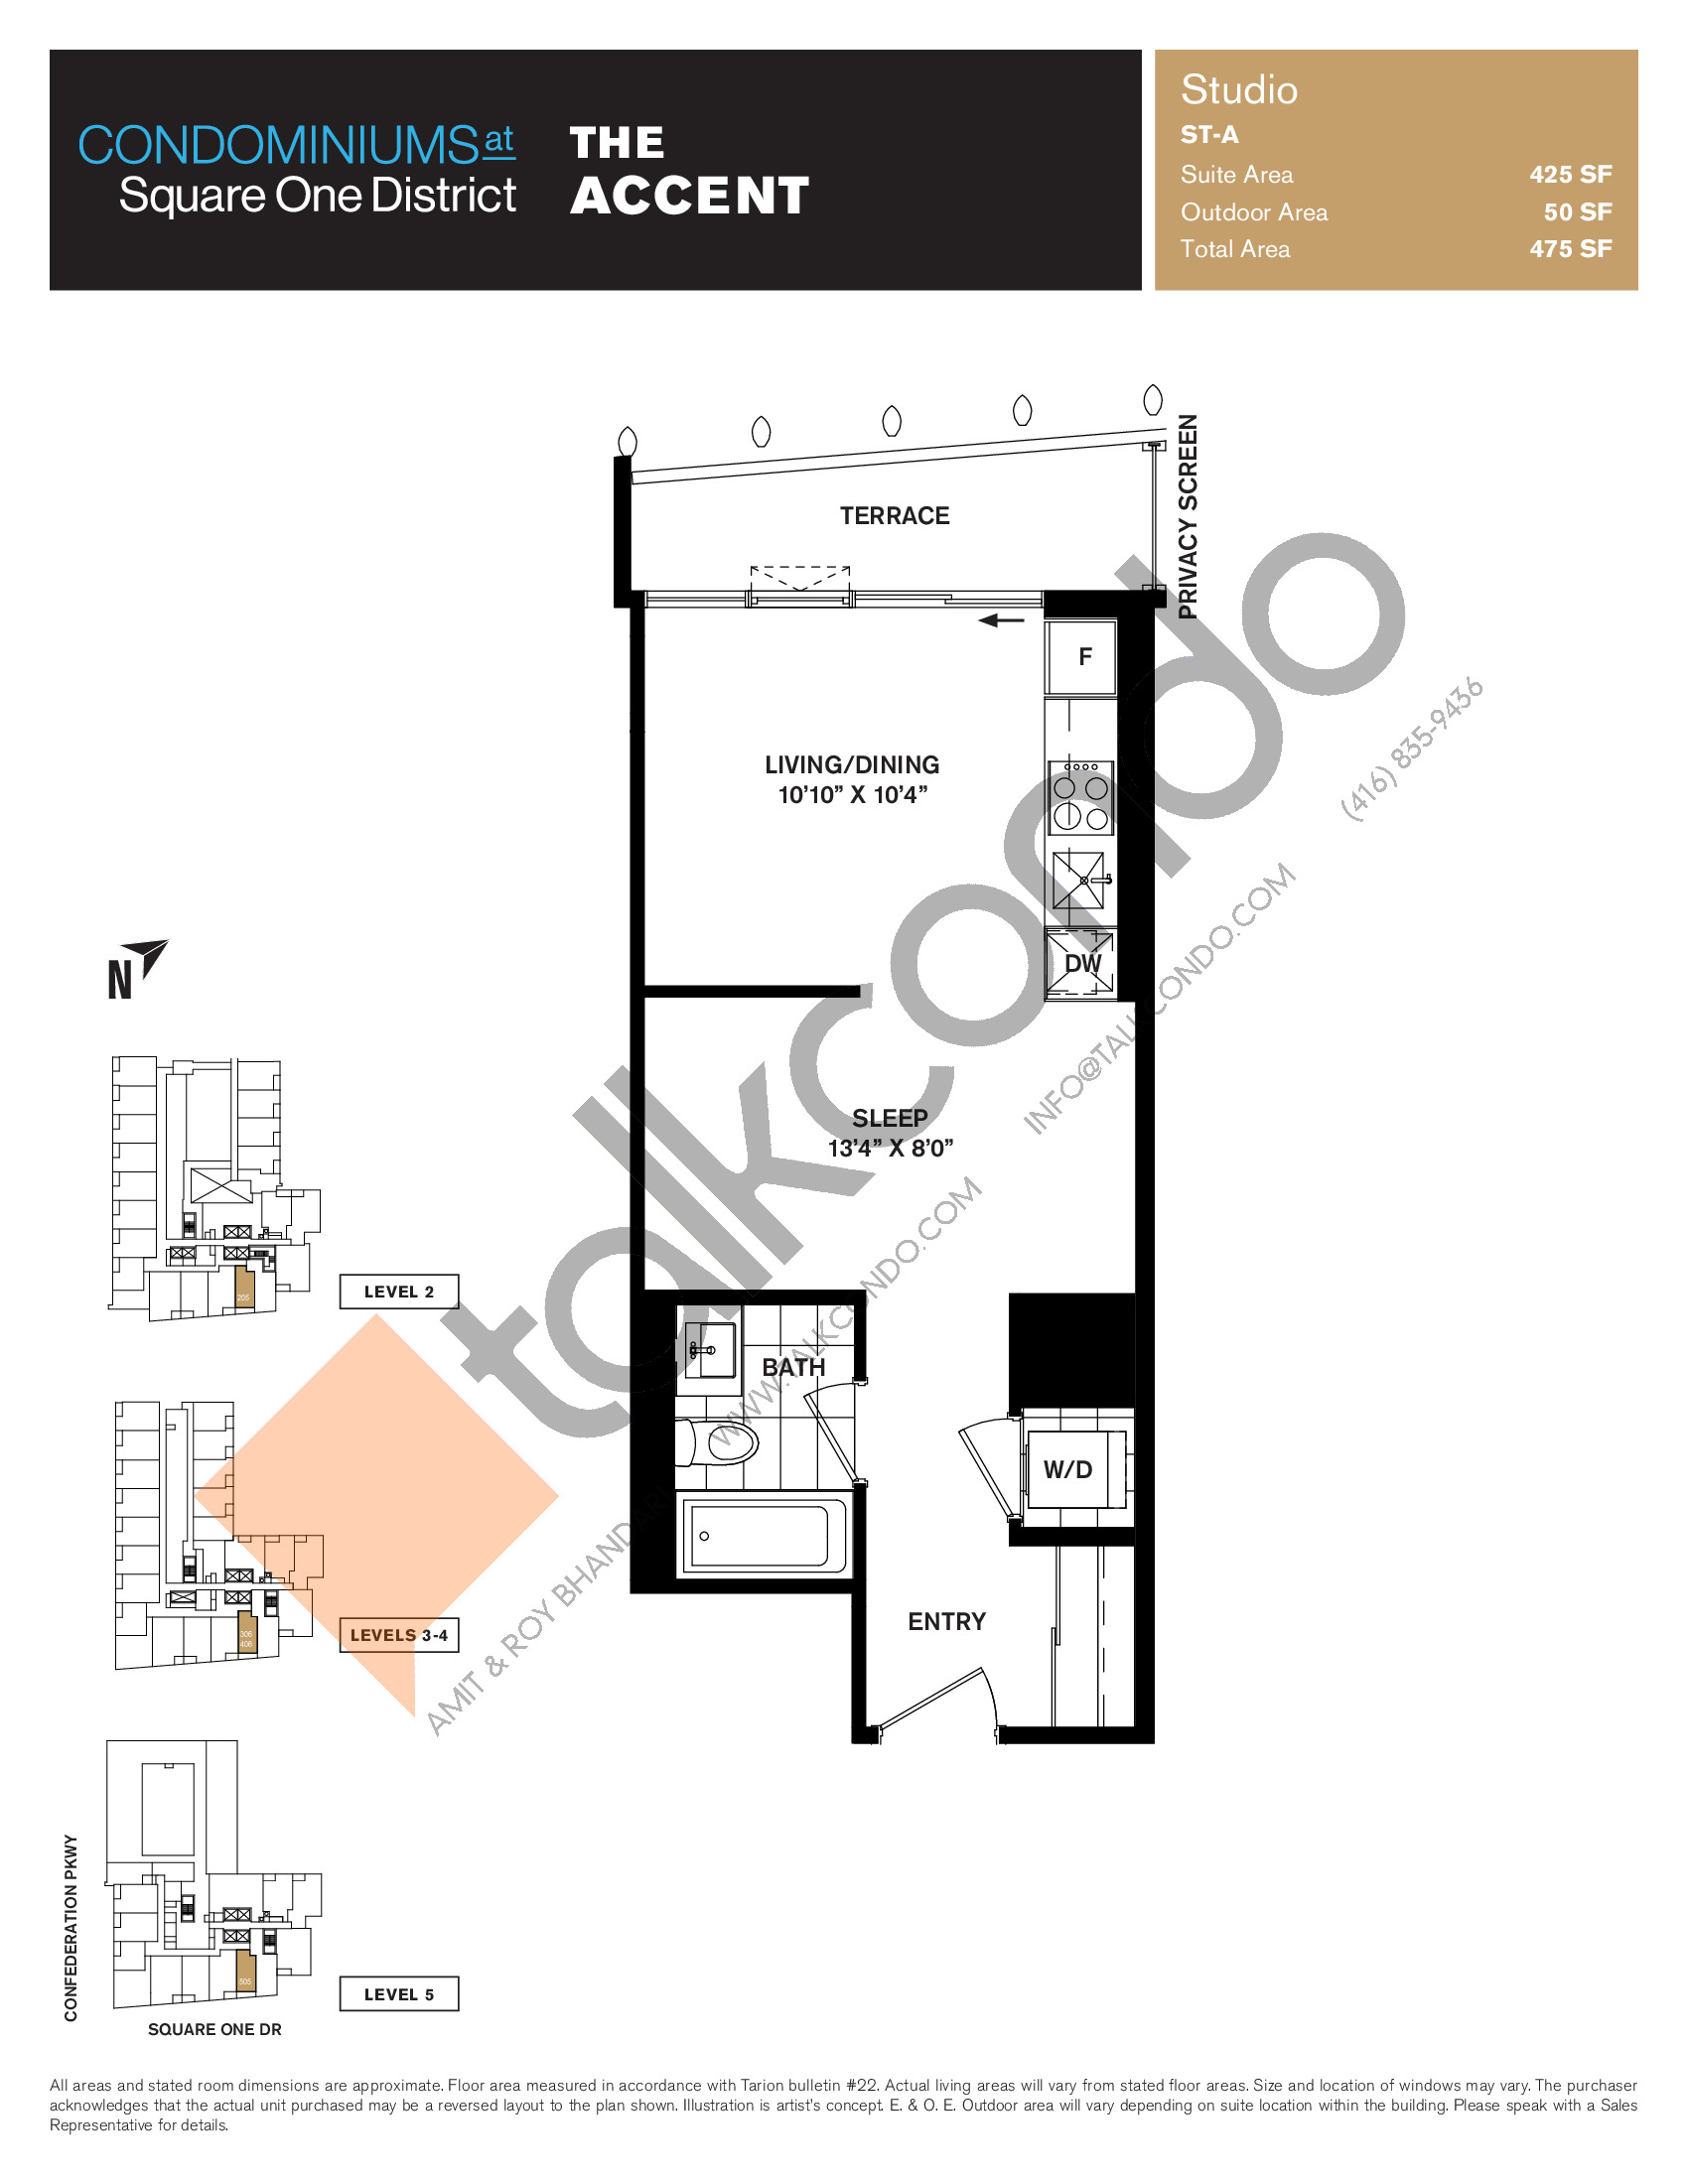 The Accent Floor Plan at Condominiums at Square One District - 425 sq.ft